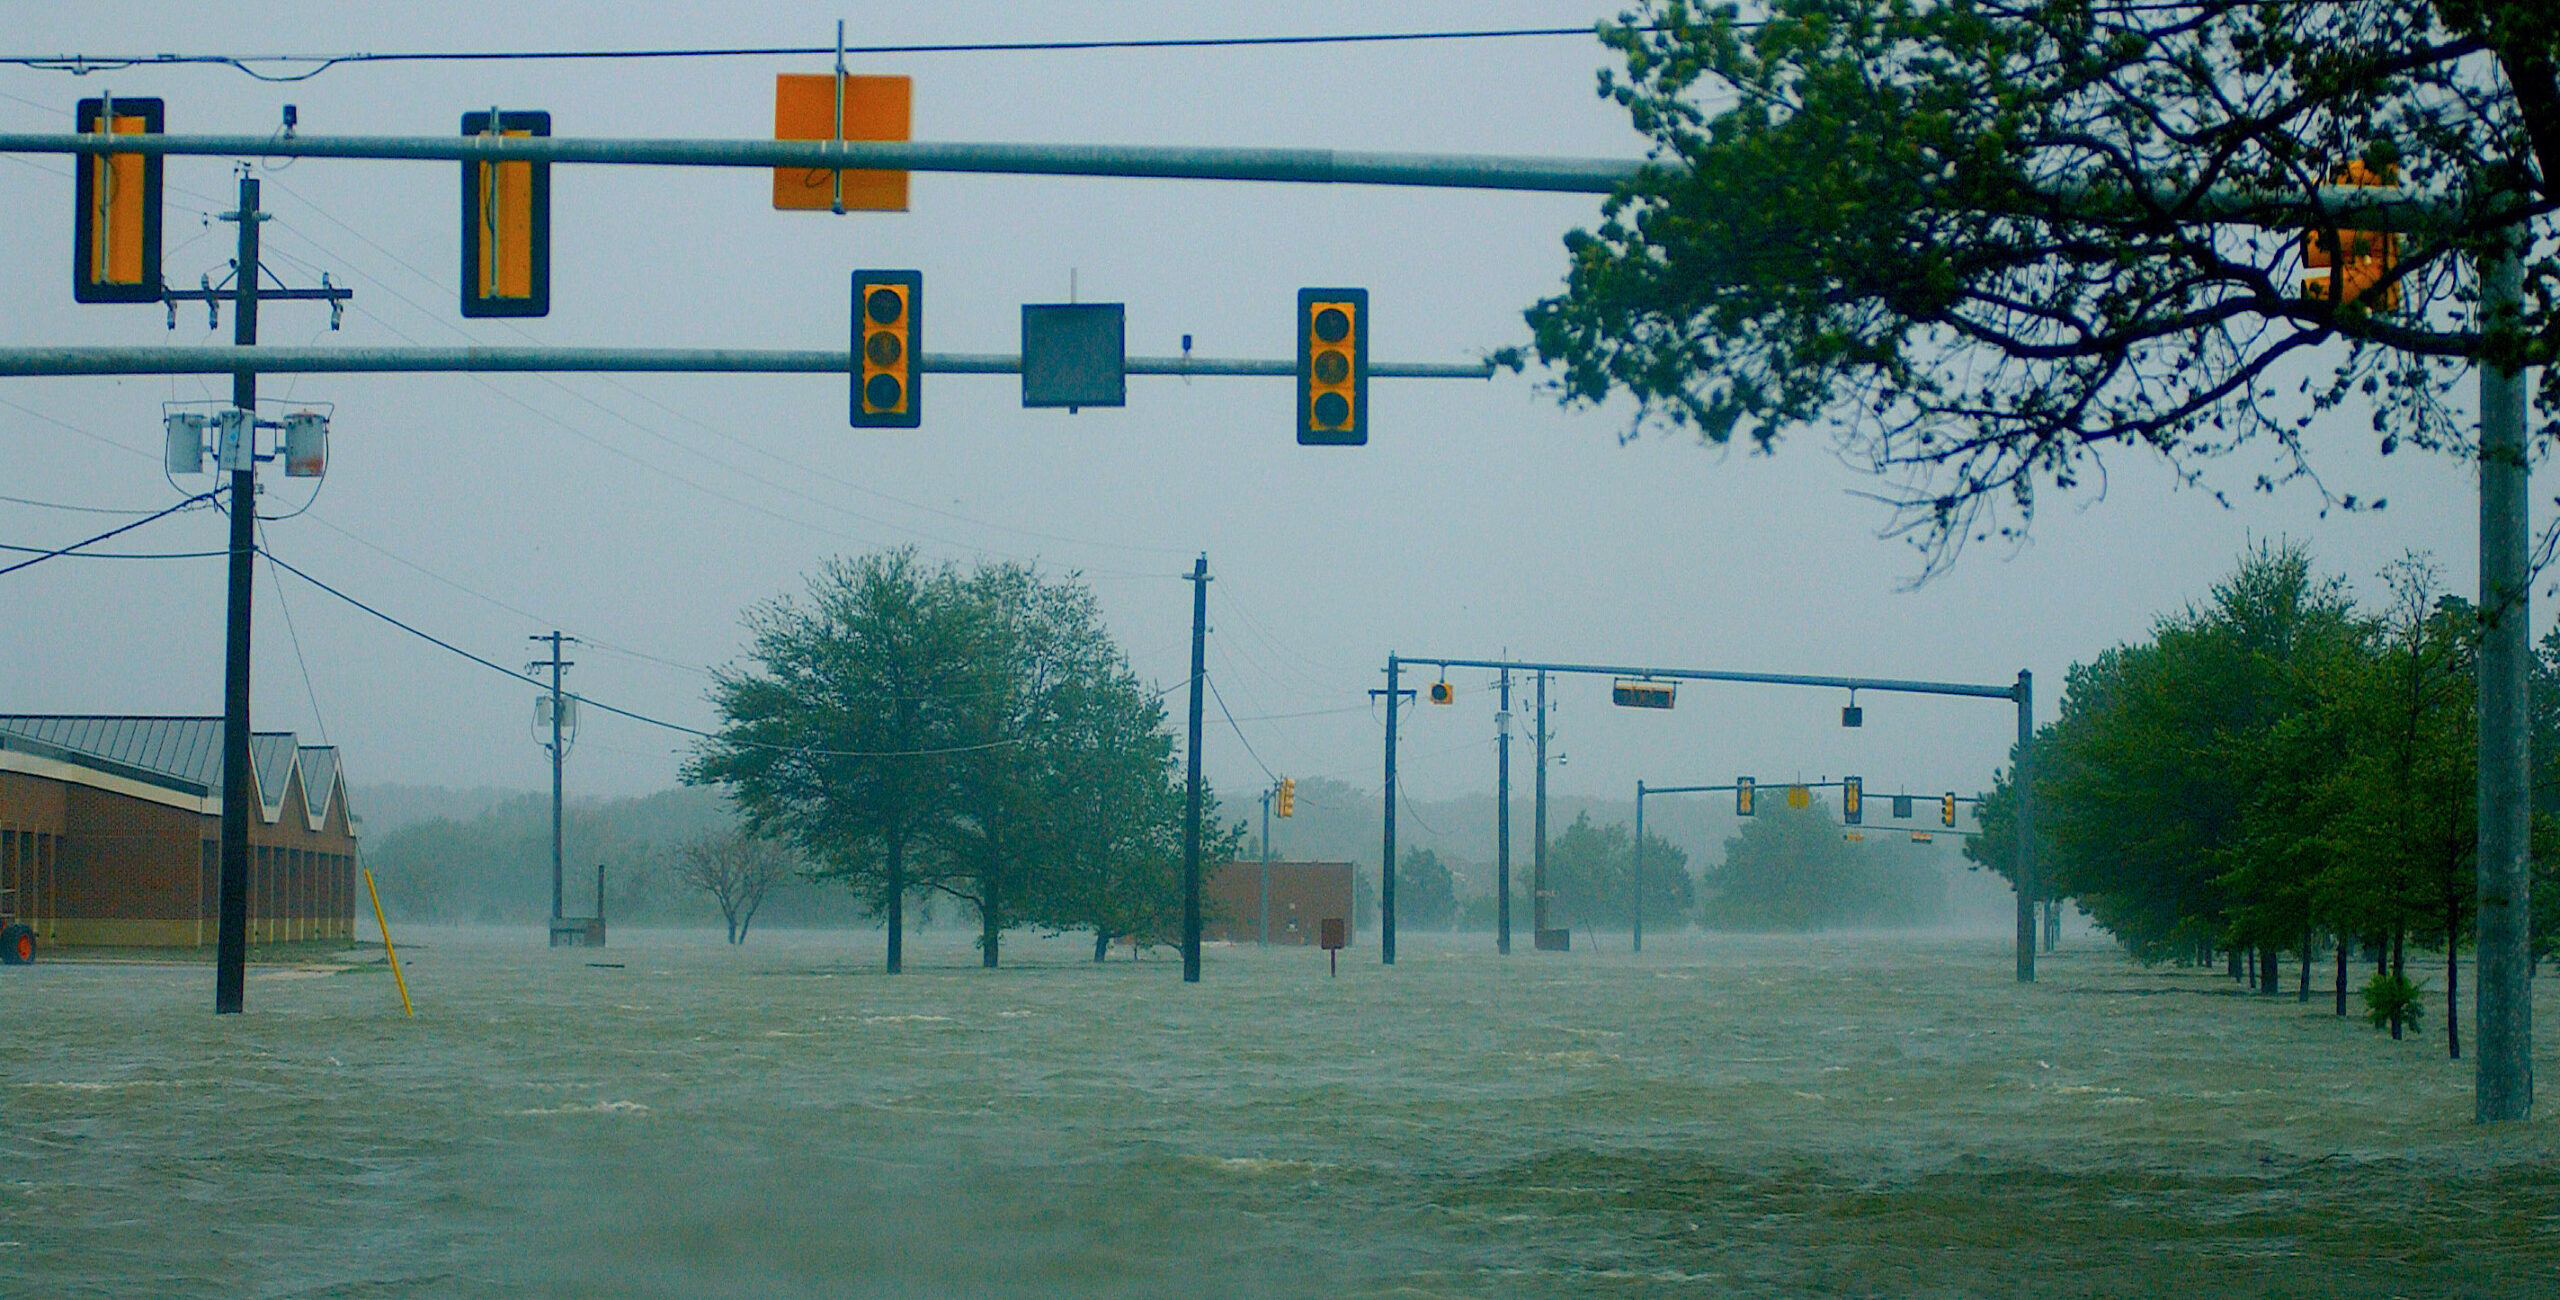 Flood waters from Hurricane Isabel rendered one of Langley's main streets virtually impassable Sept. 18, 2003